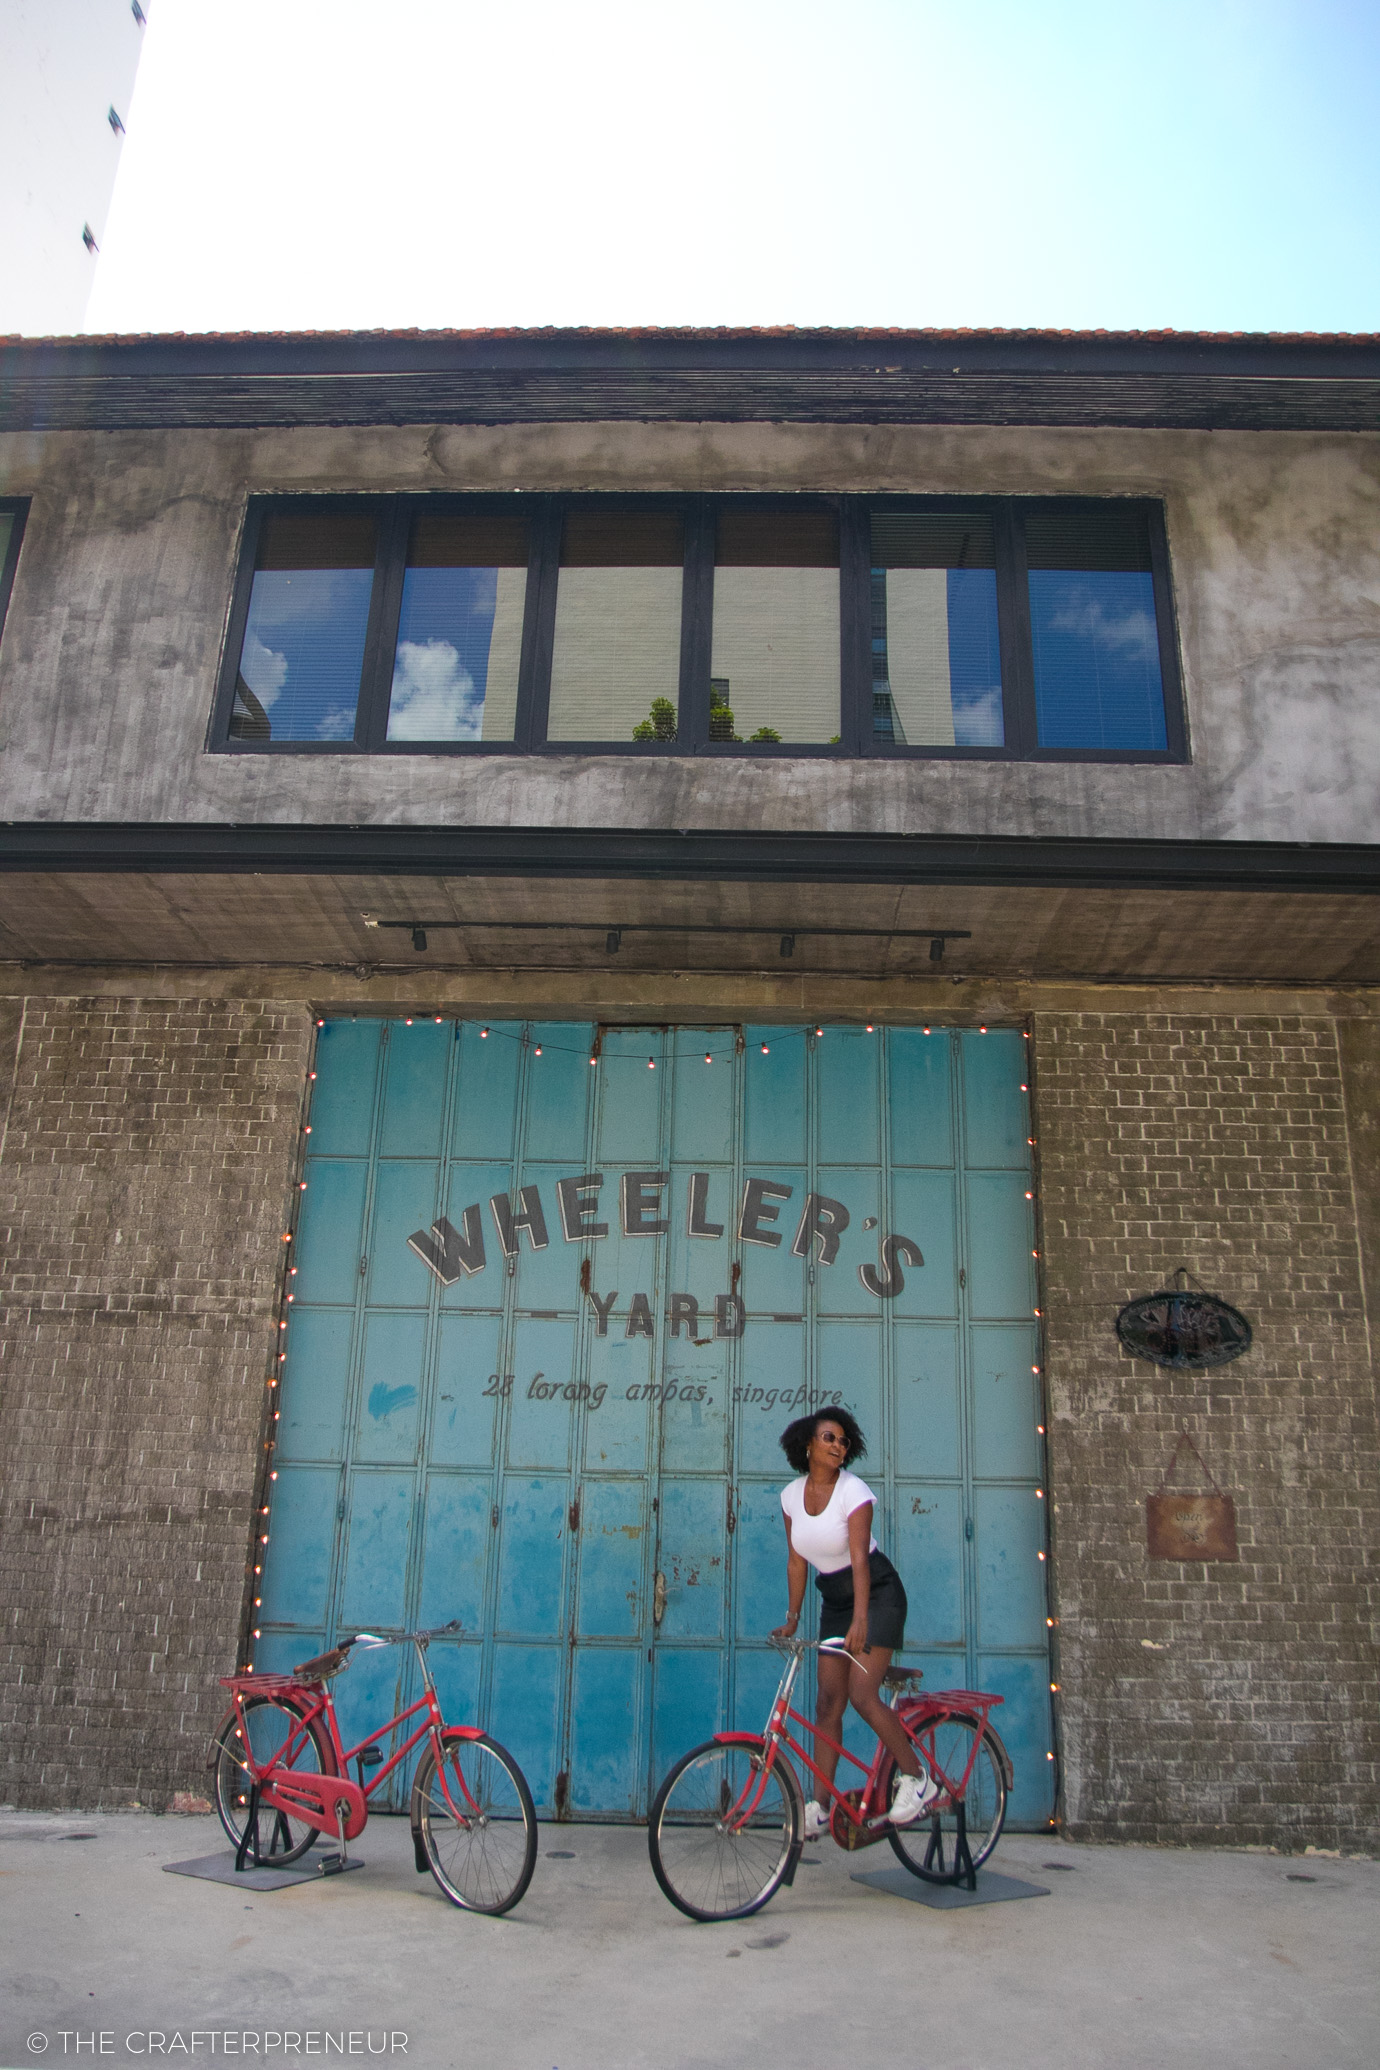 Wheeler's Yard Cafe, Singapore